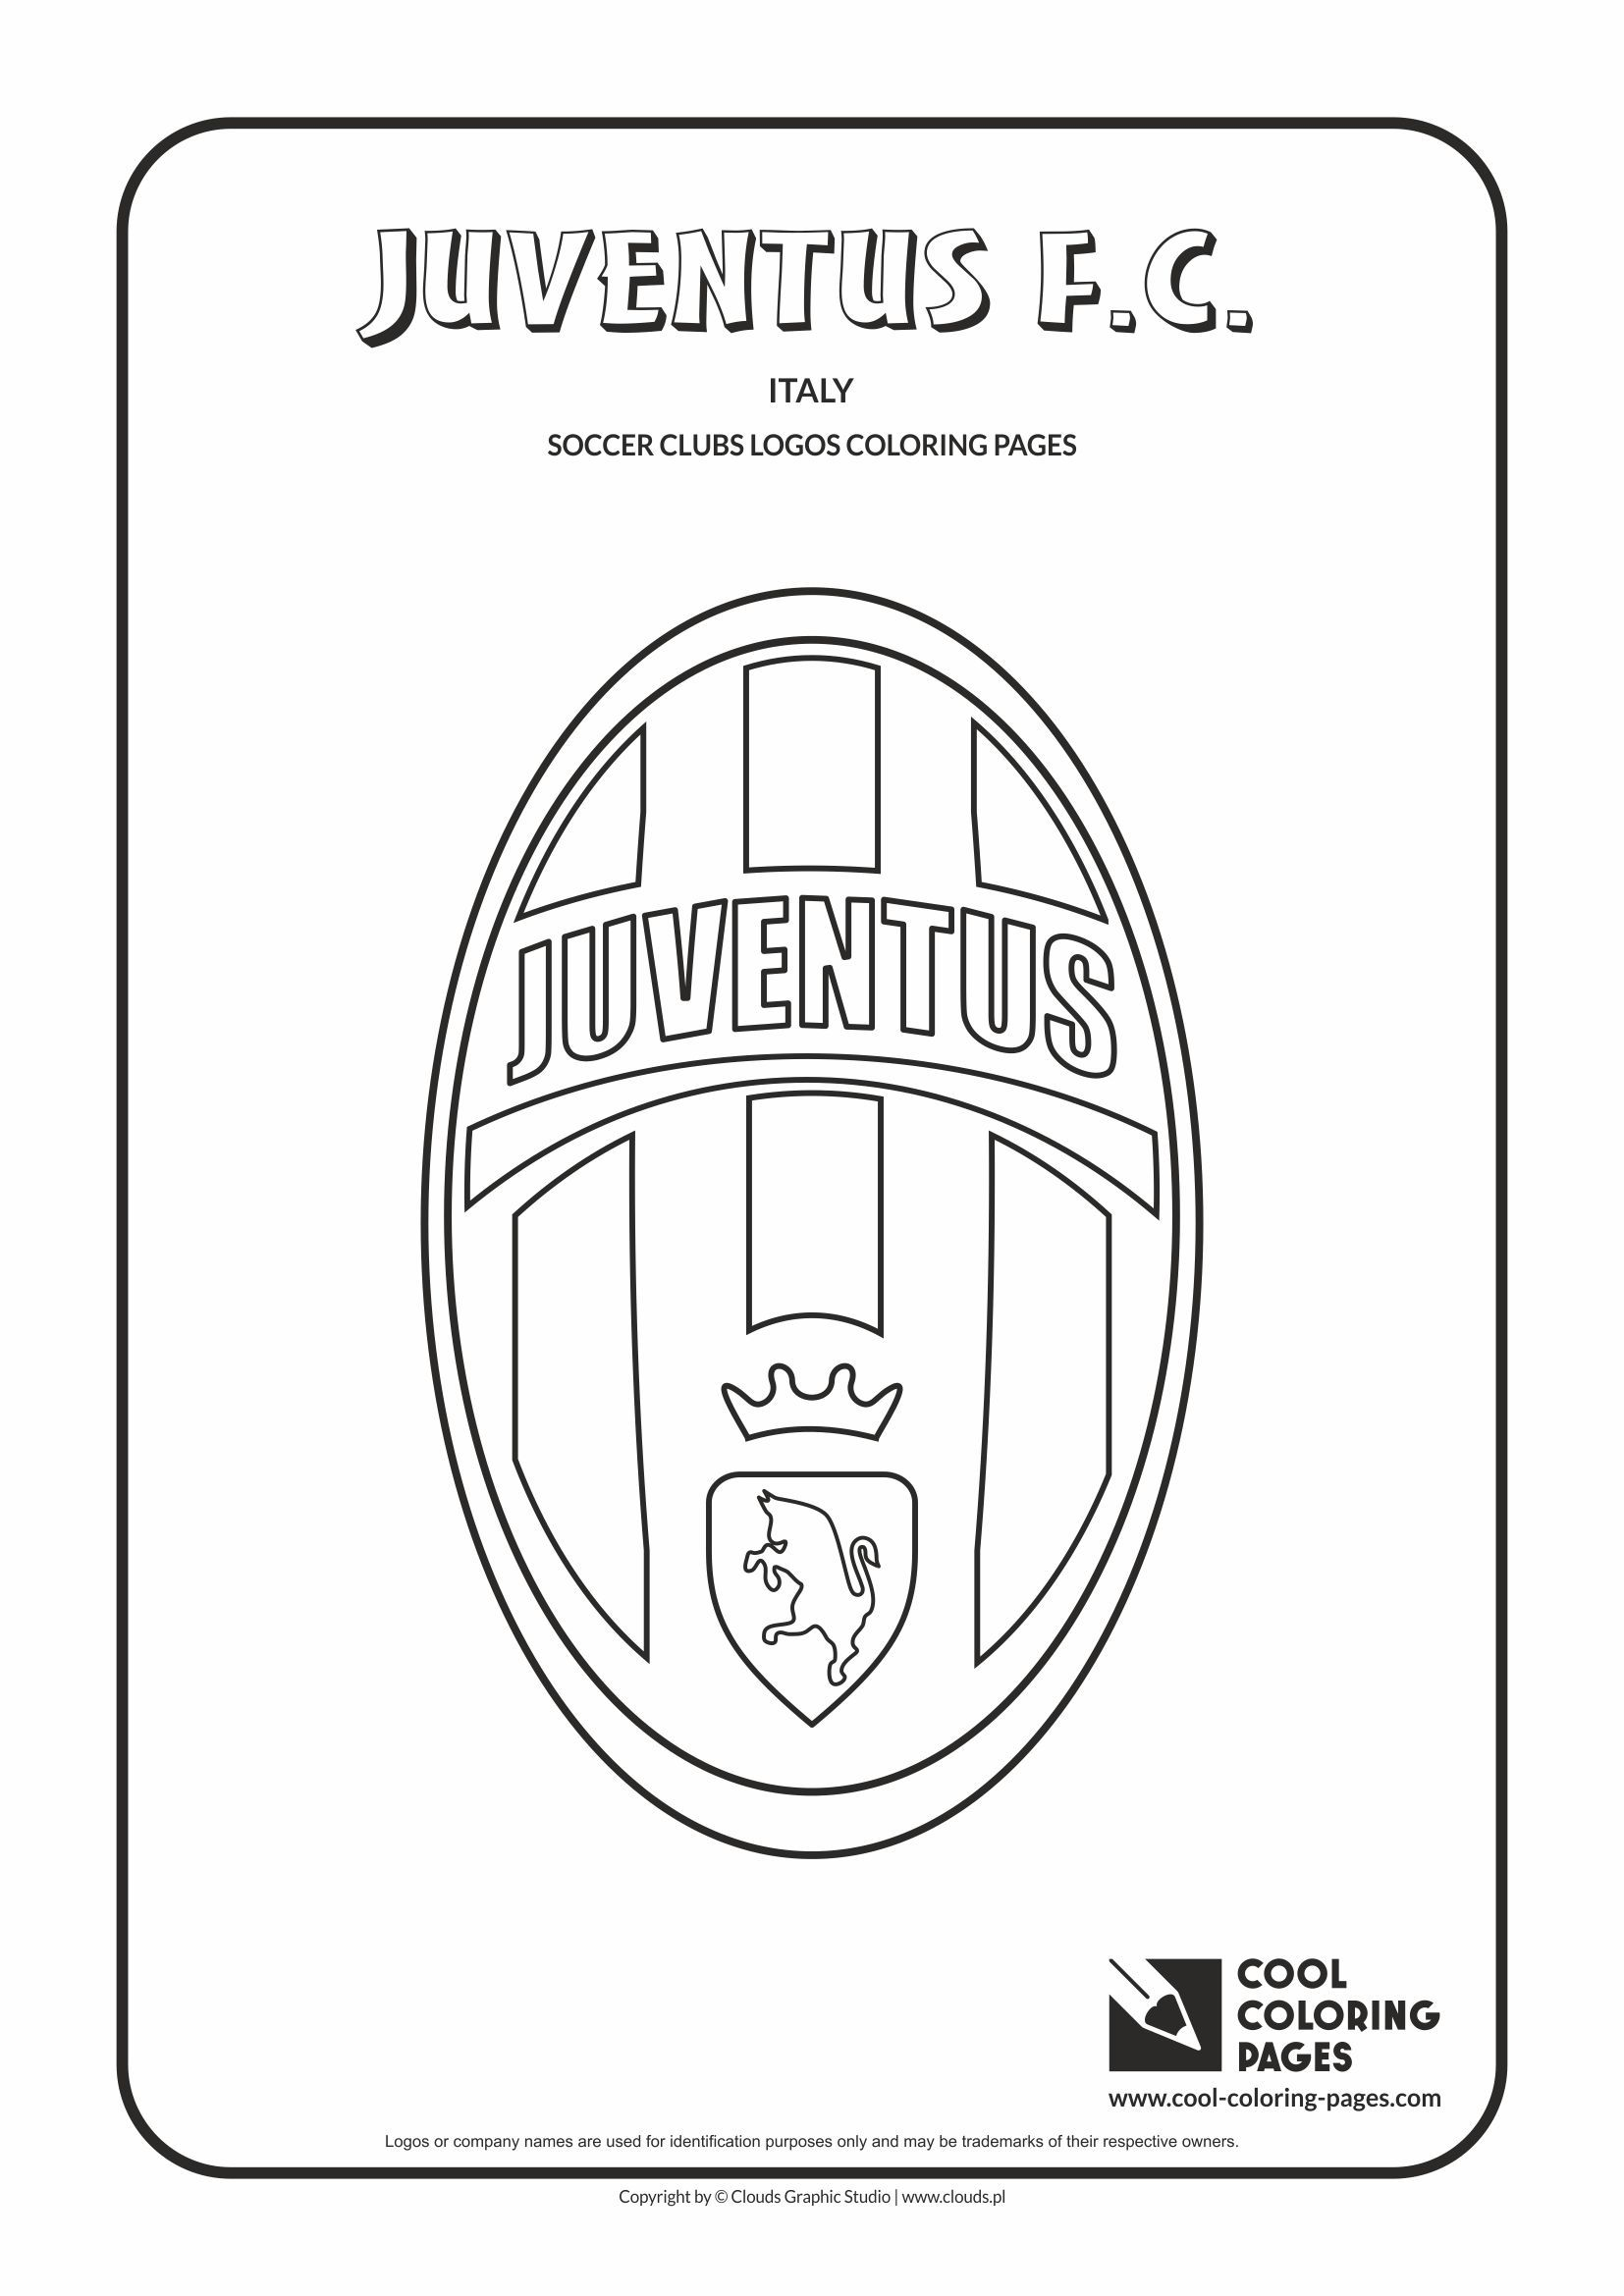 Juventus F C Logo Coloring Page Football Coloring Pages Cool Coloring Pages Coloring Pages